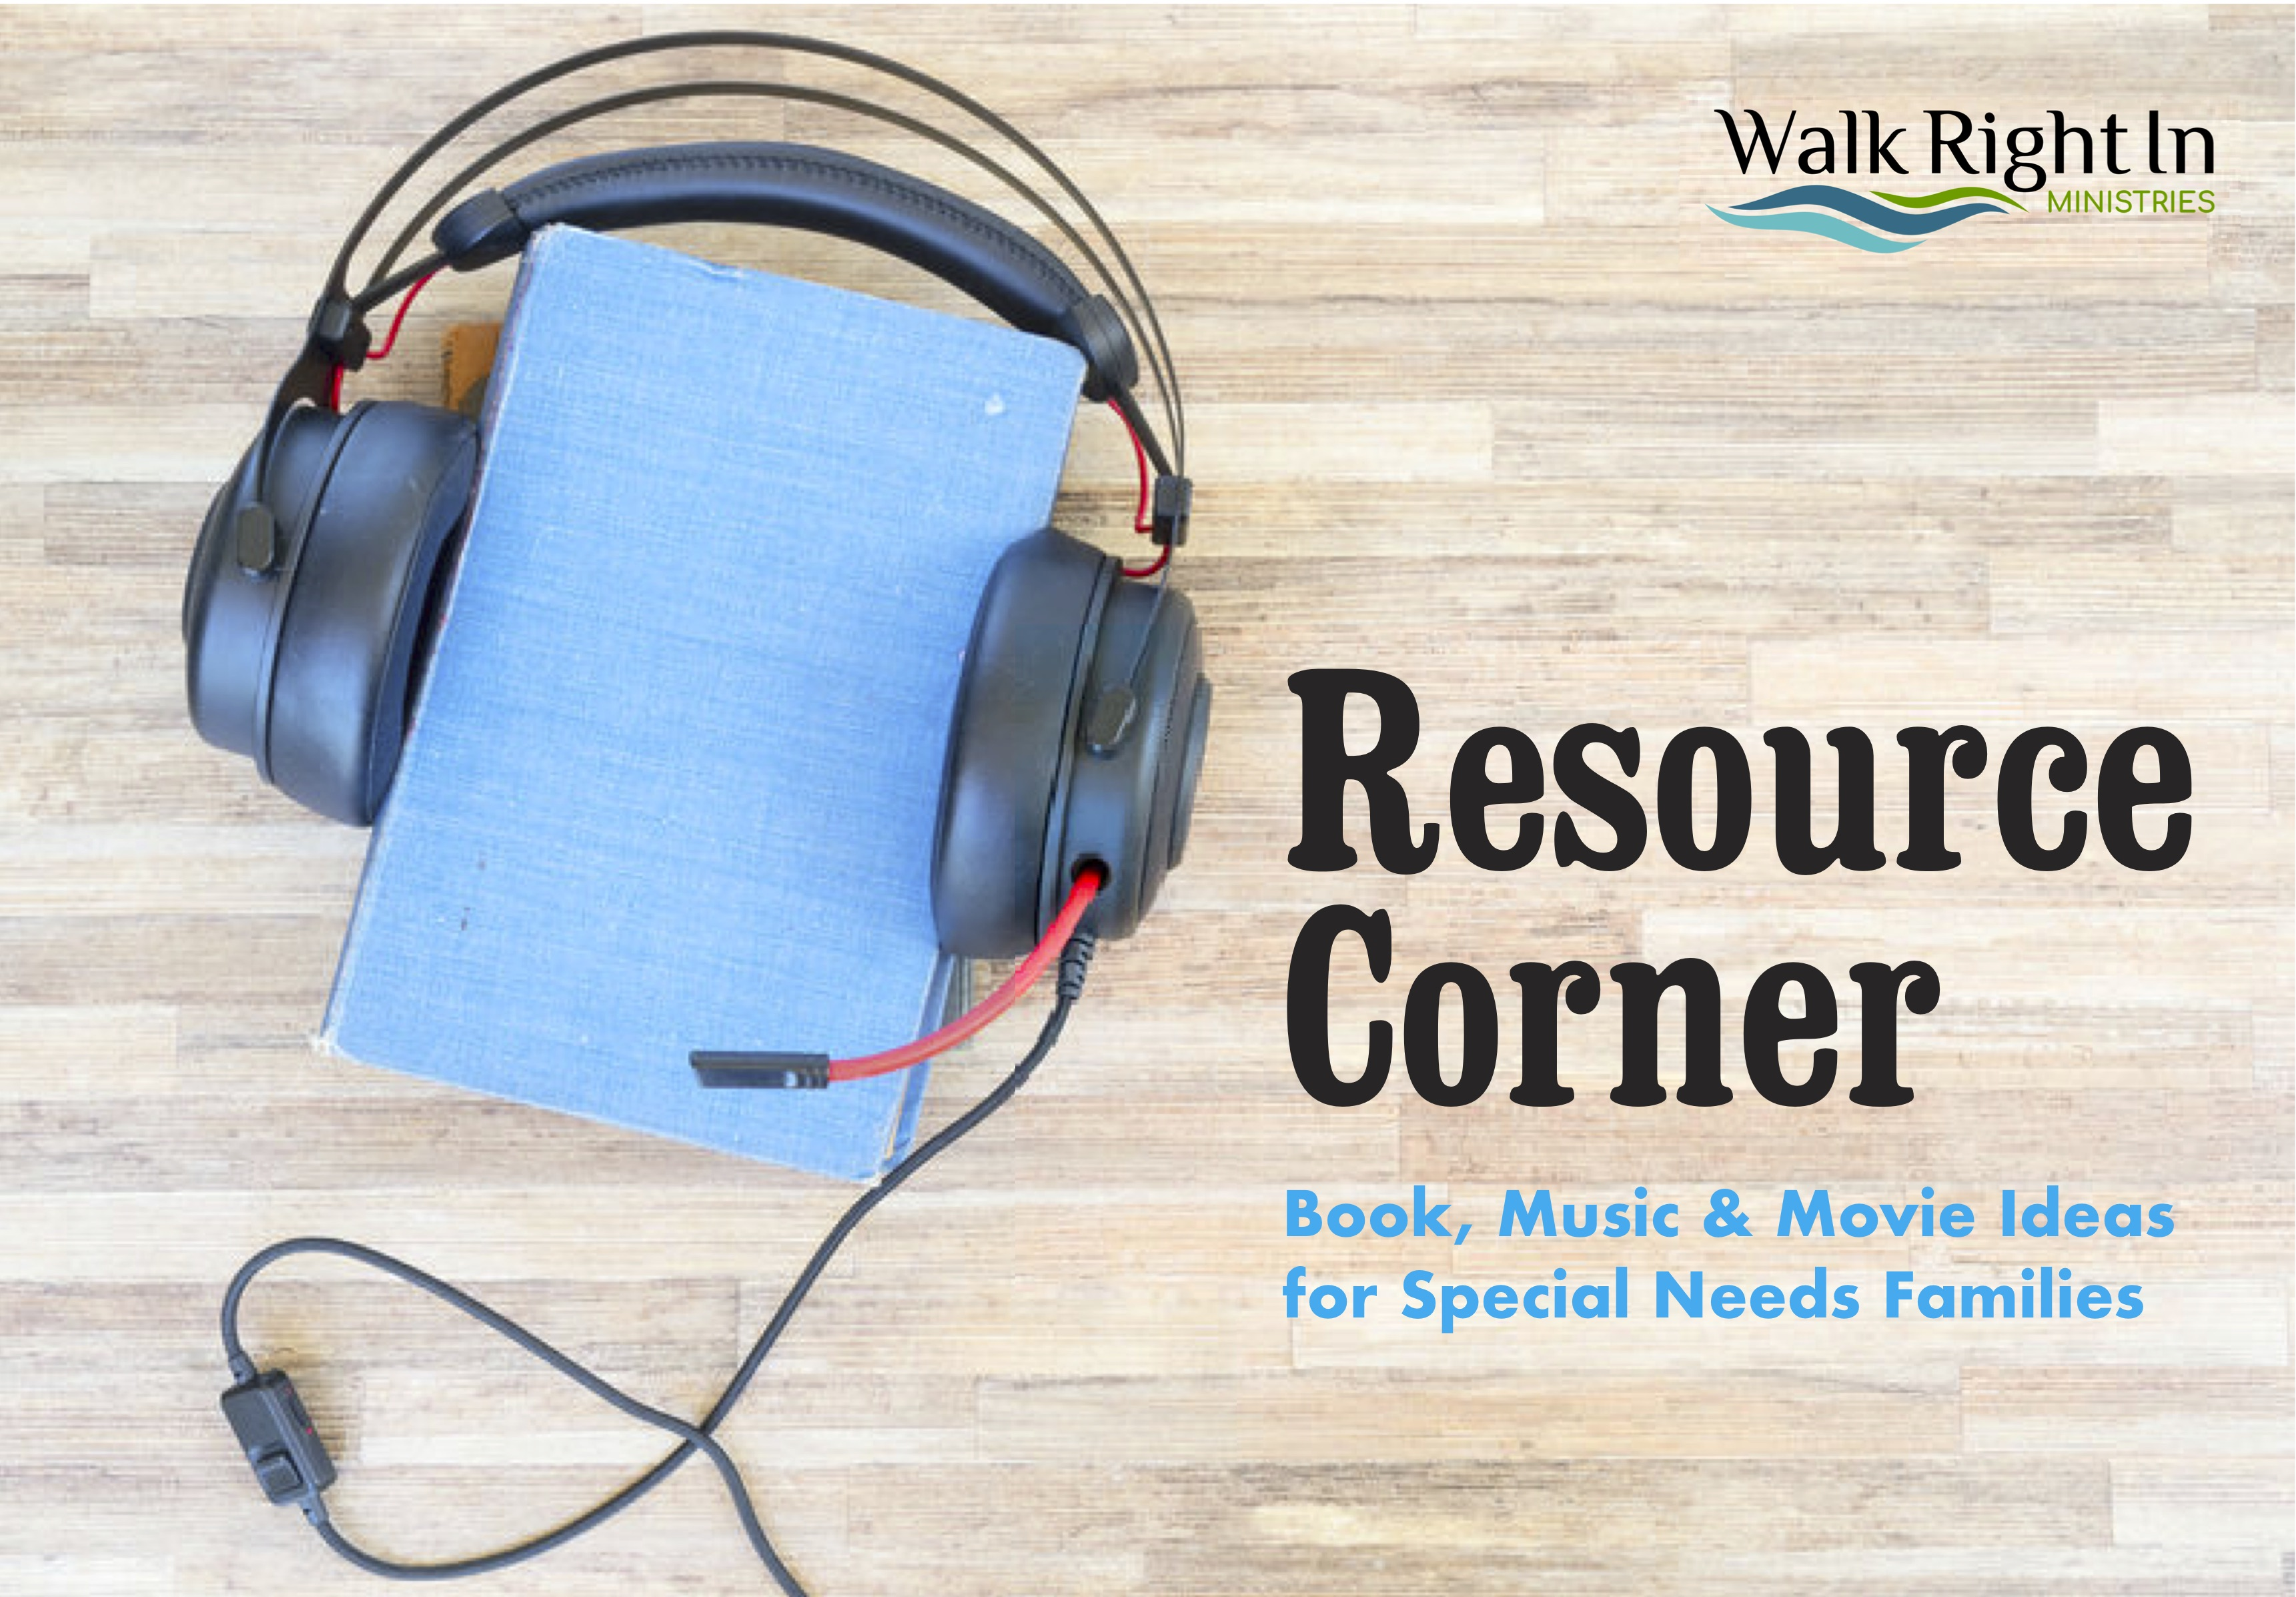 Resource Corner: An Insightful Surprise and Two Delights for Kids